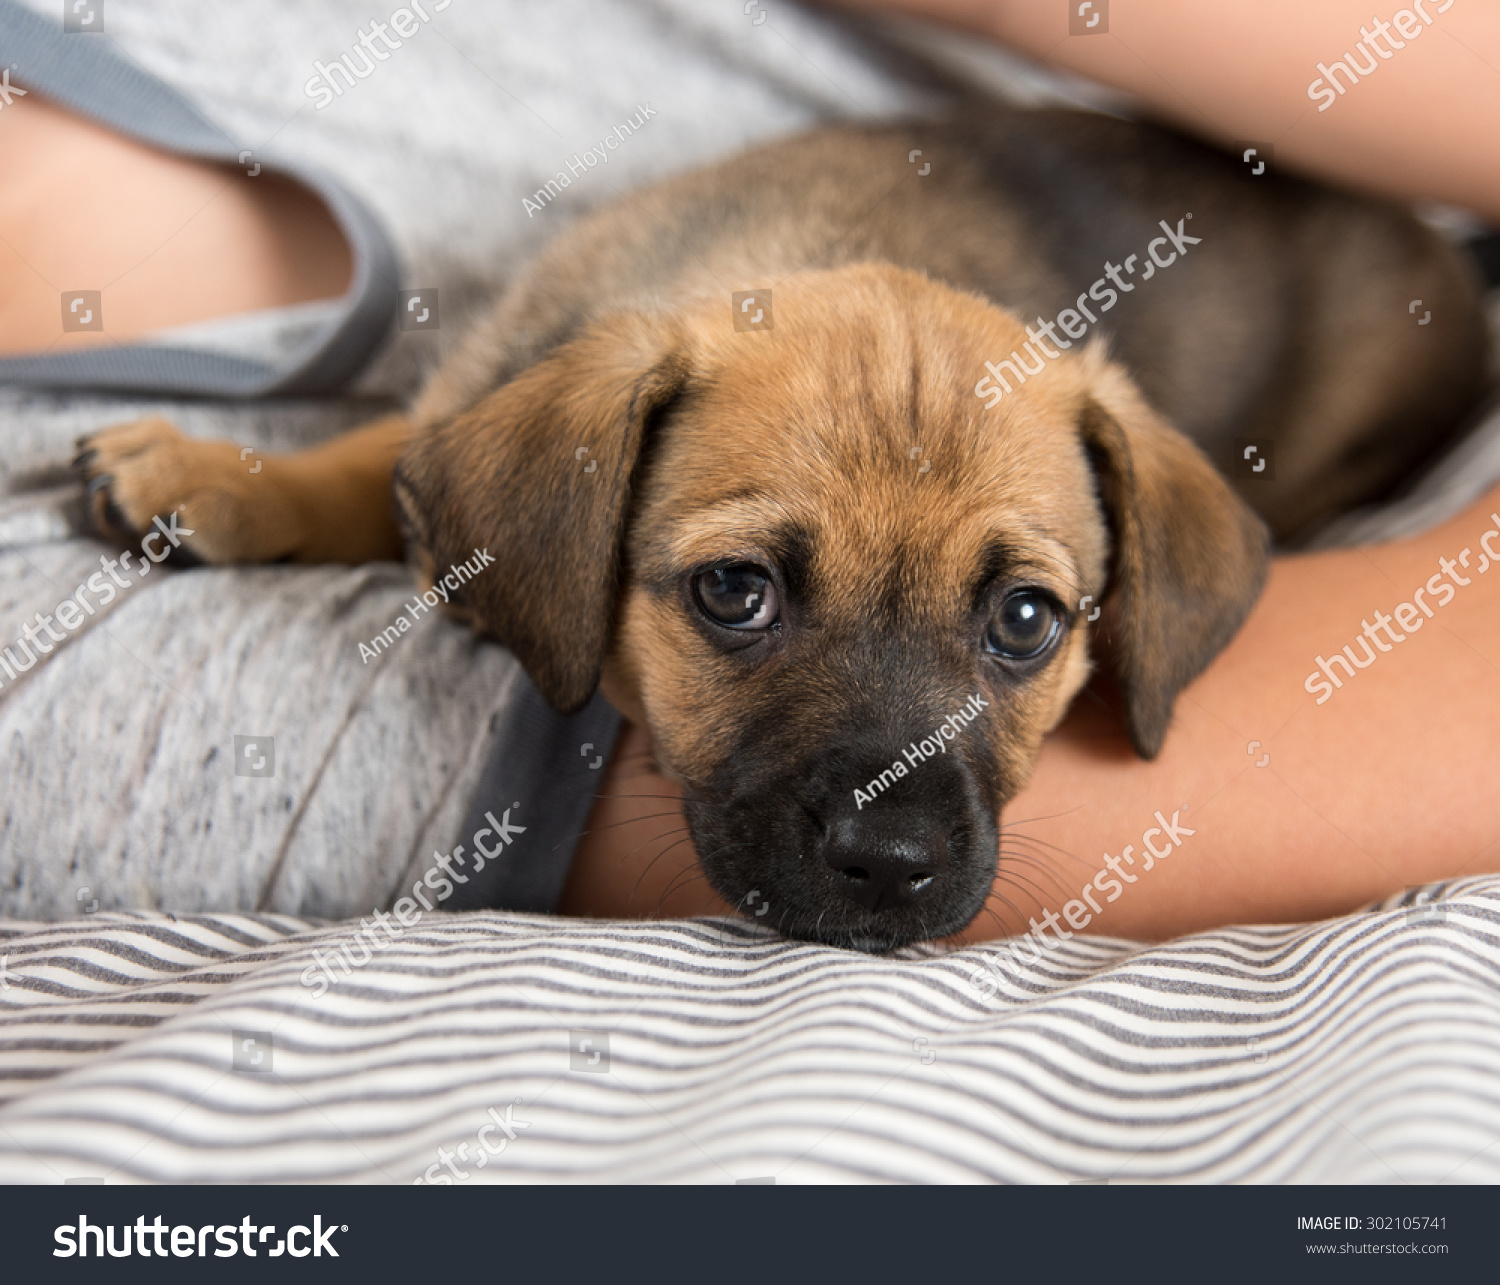 Child Protecting Brown Puppy With Floppy Ears Stock Photo 302105741 : Shutterstock